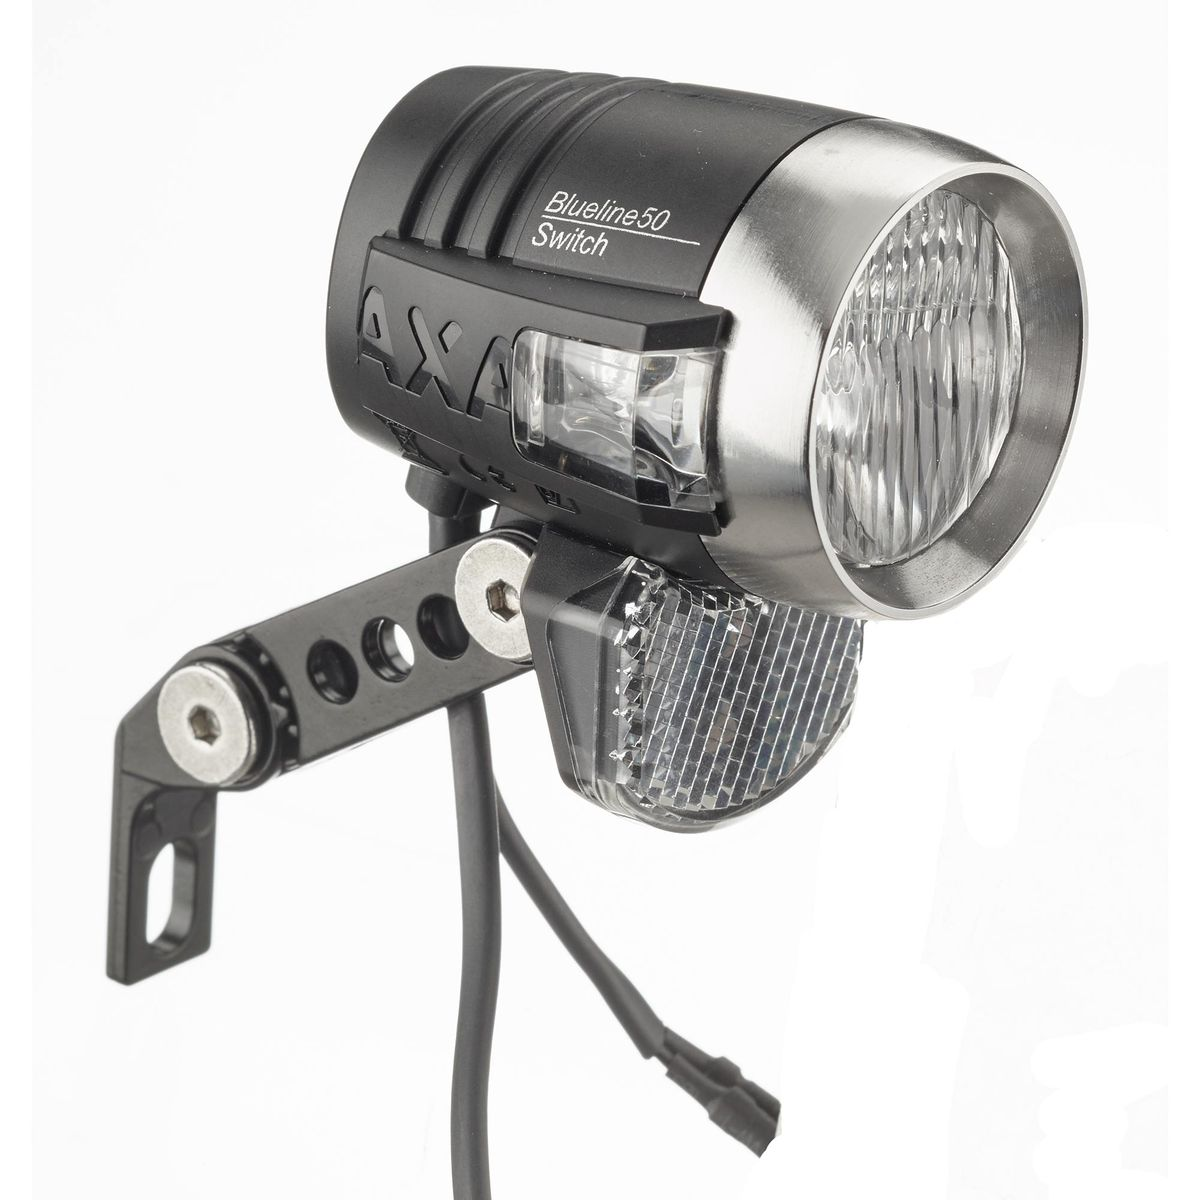 AXA Blueline 50 Switch headlight | Hjelmlygter